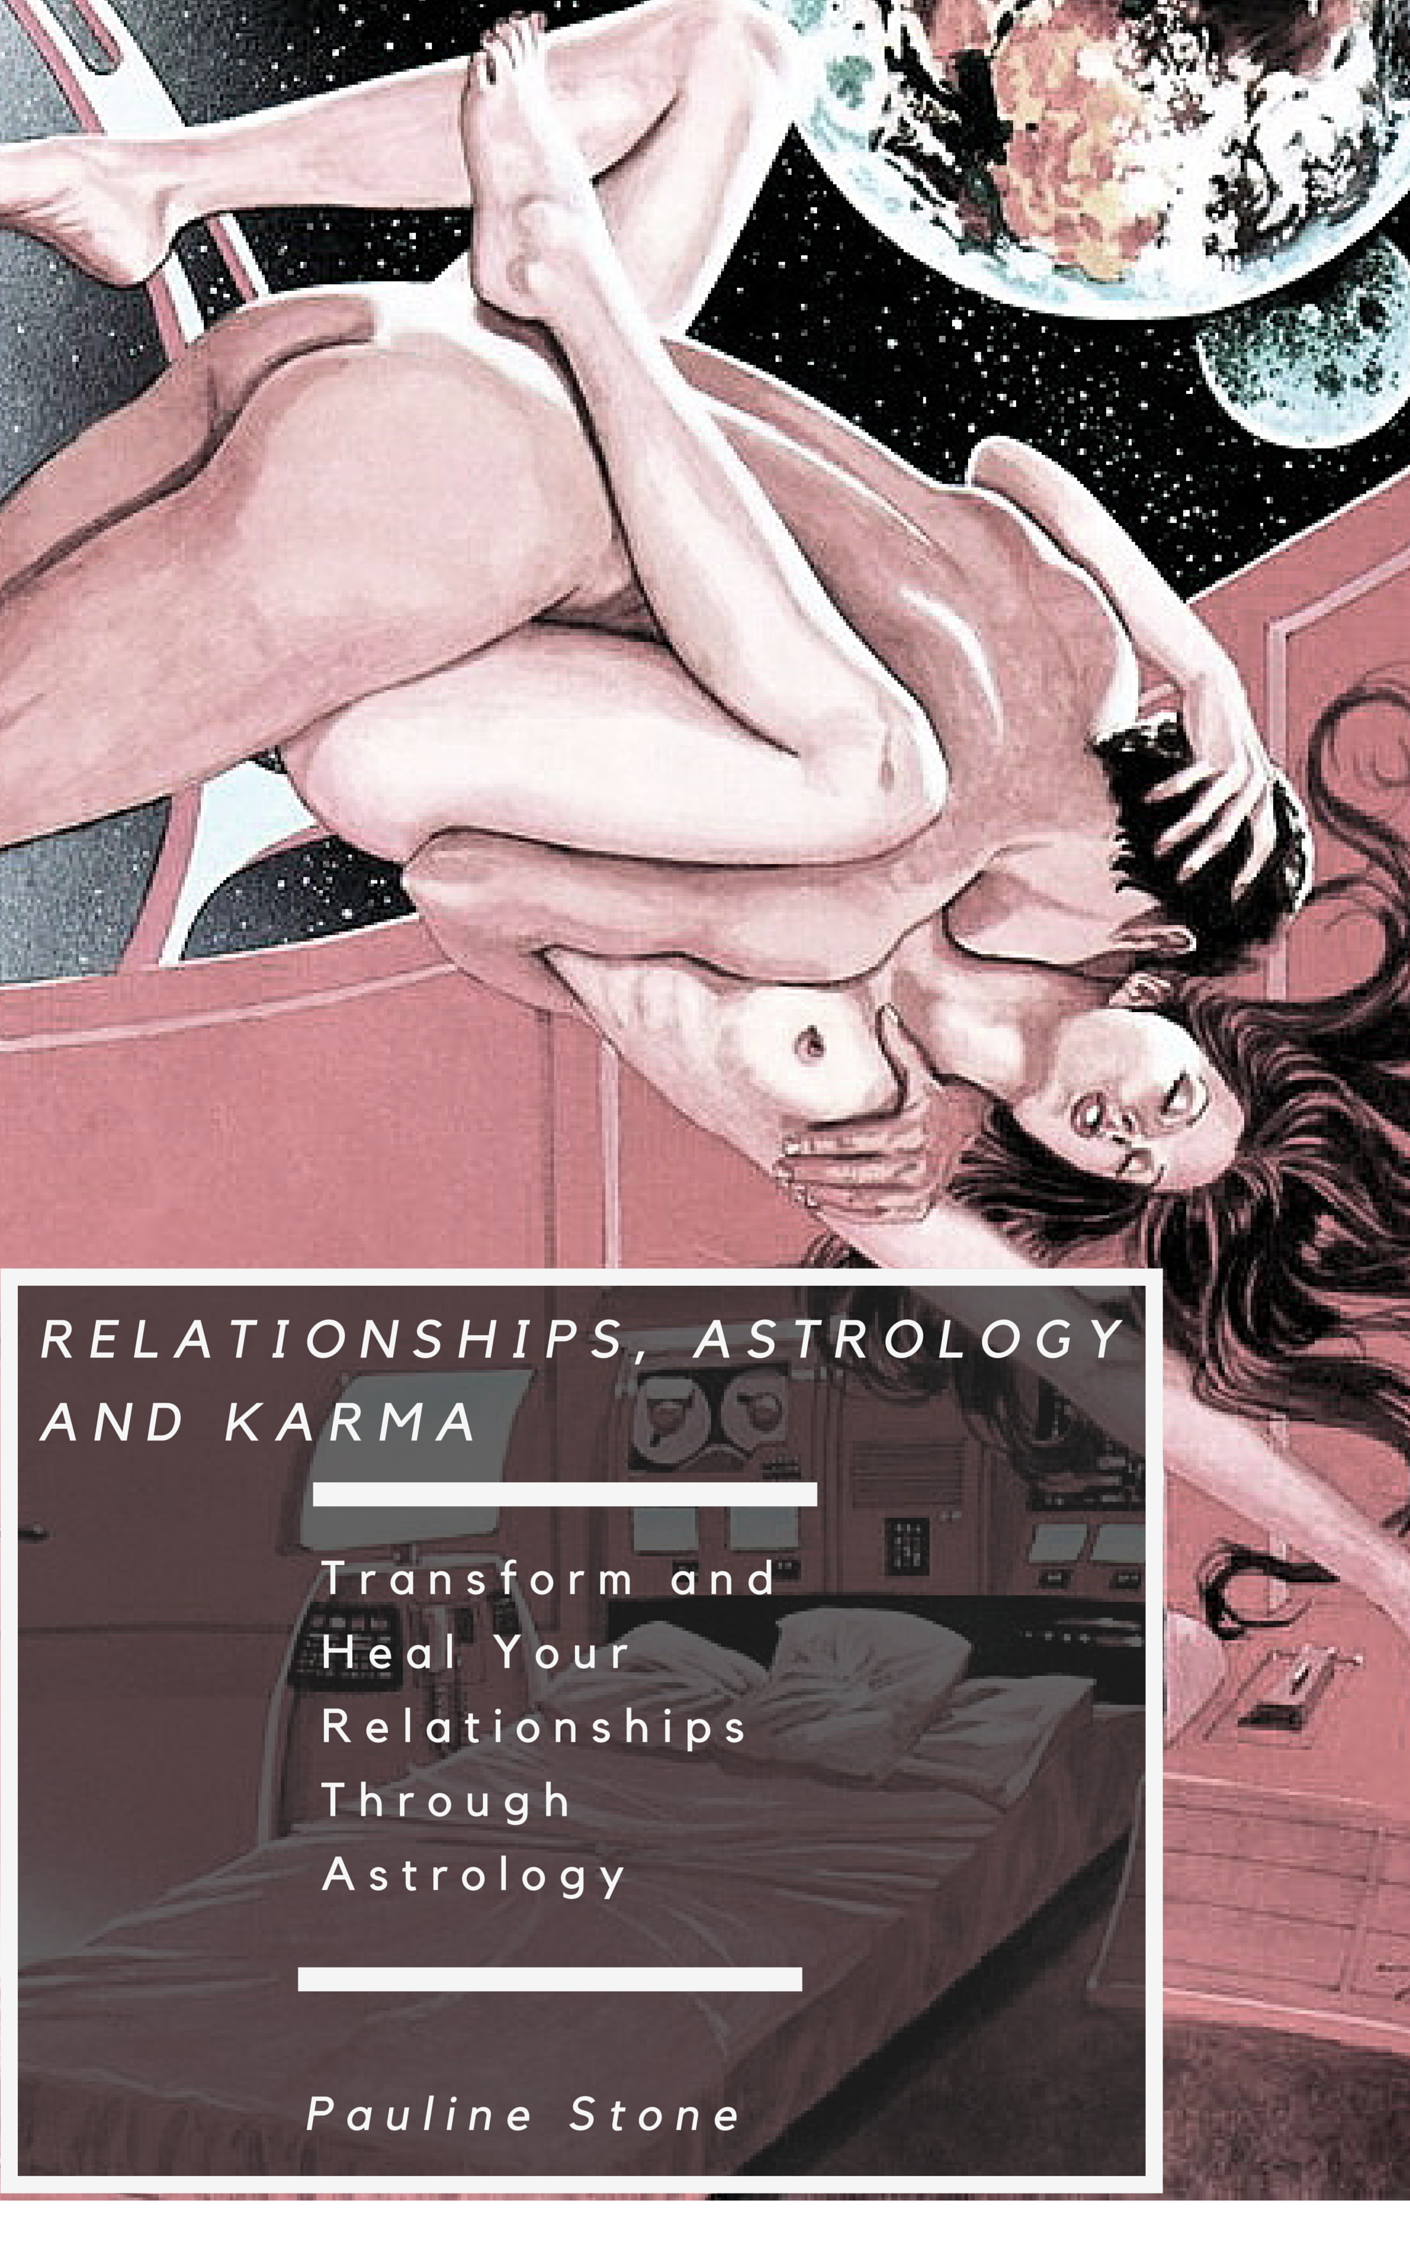 Relationships, Astrology and Karma